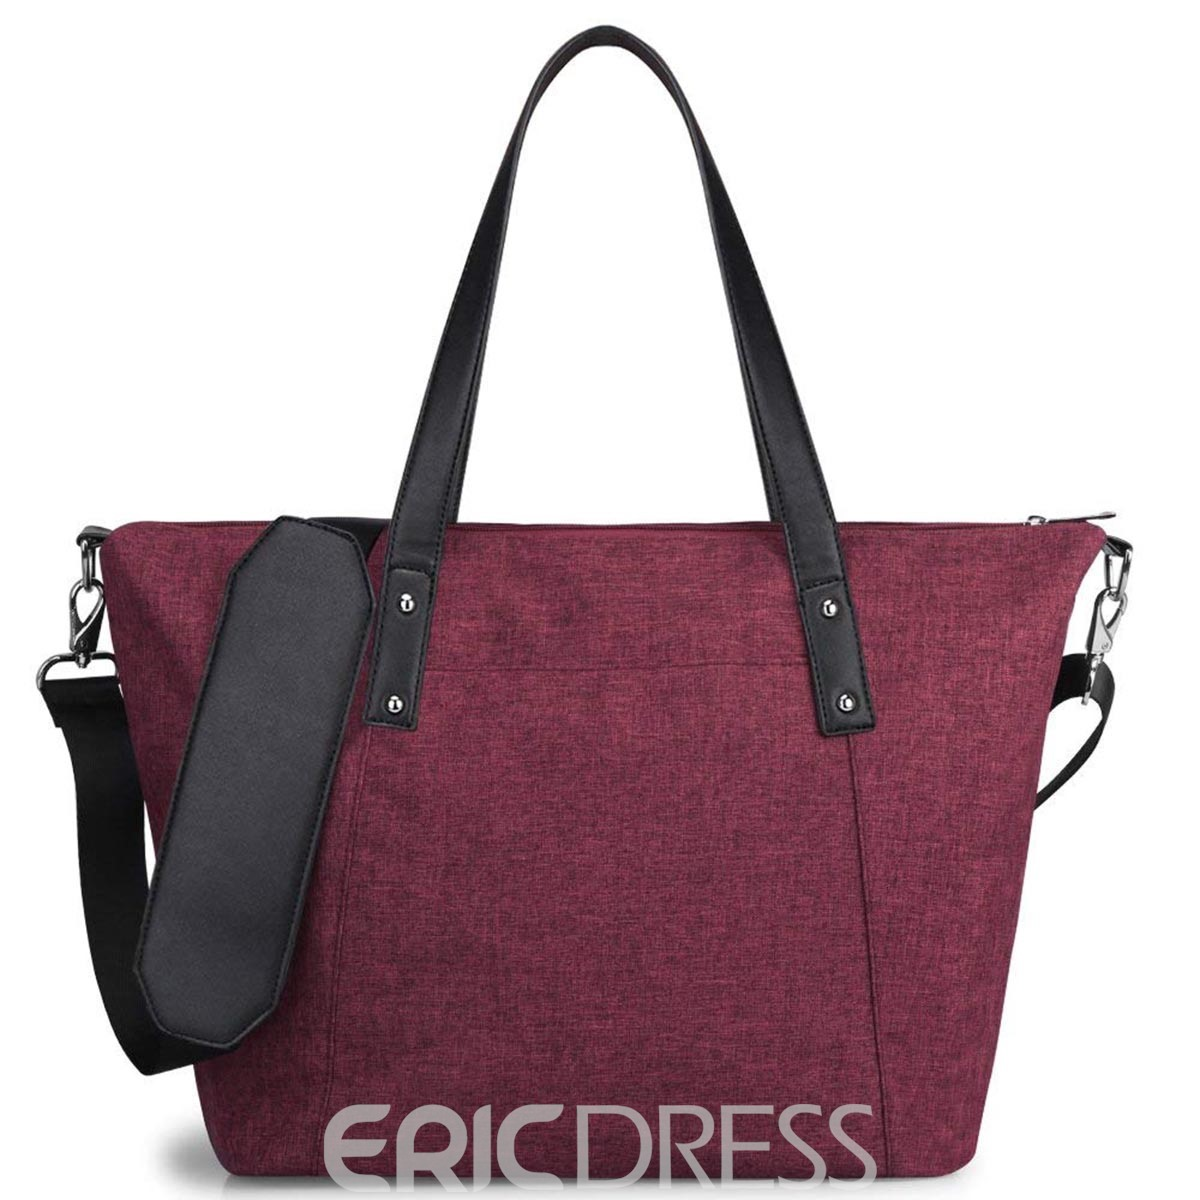 Ericdress Wear Resisting Zipper Shoulder Bag